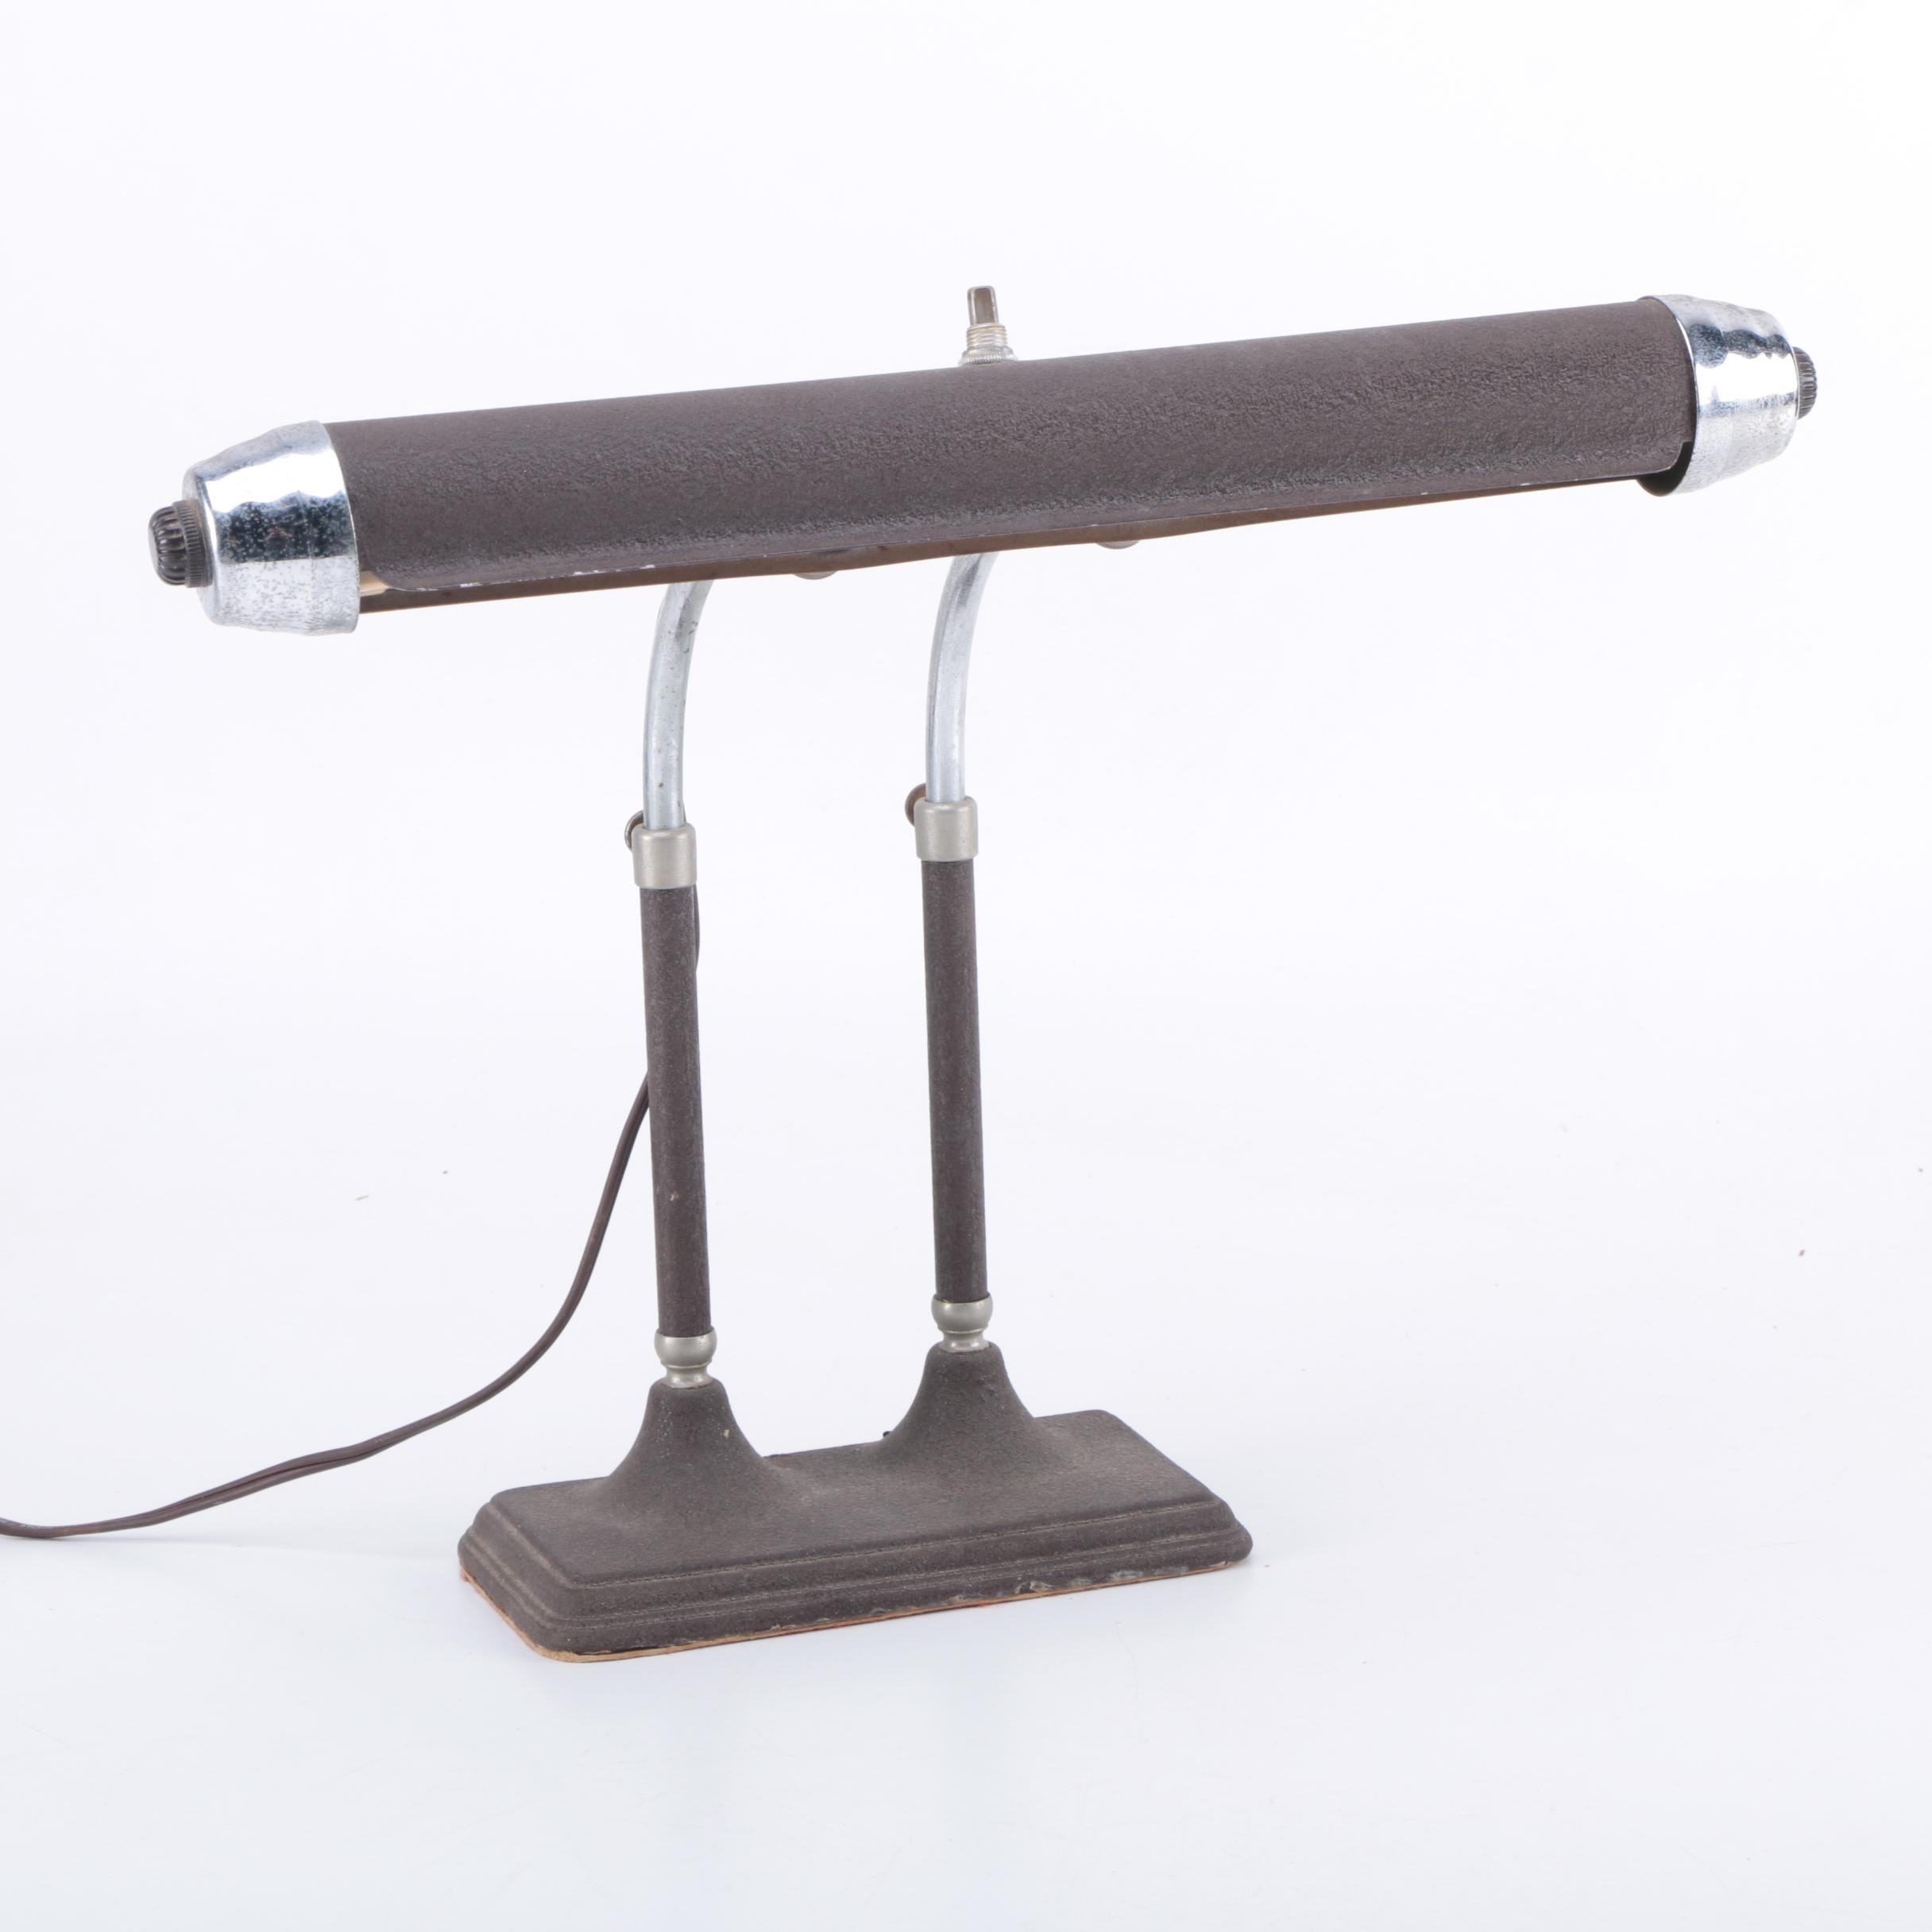 Vintage Radionic Trans Co. Banker's or Piano Lamp